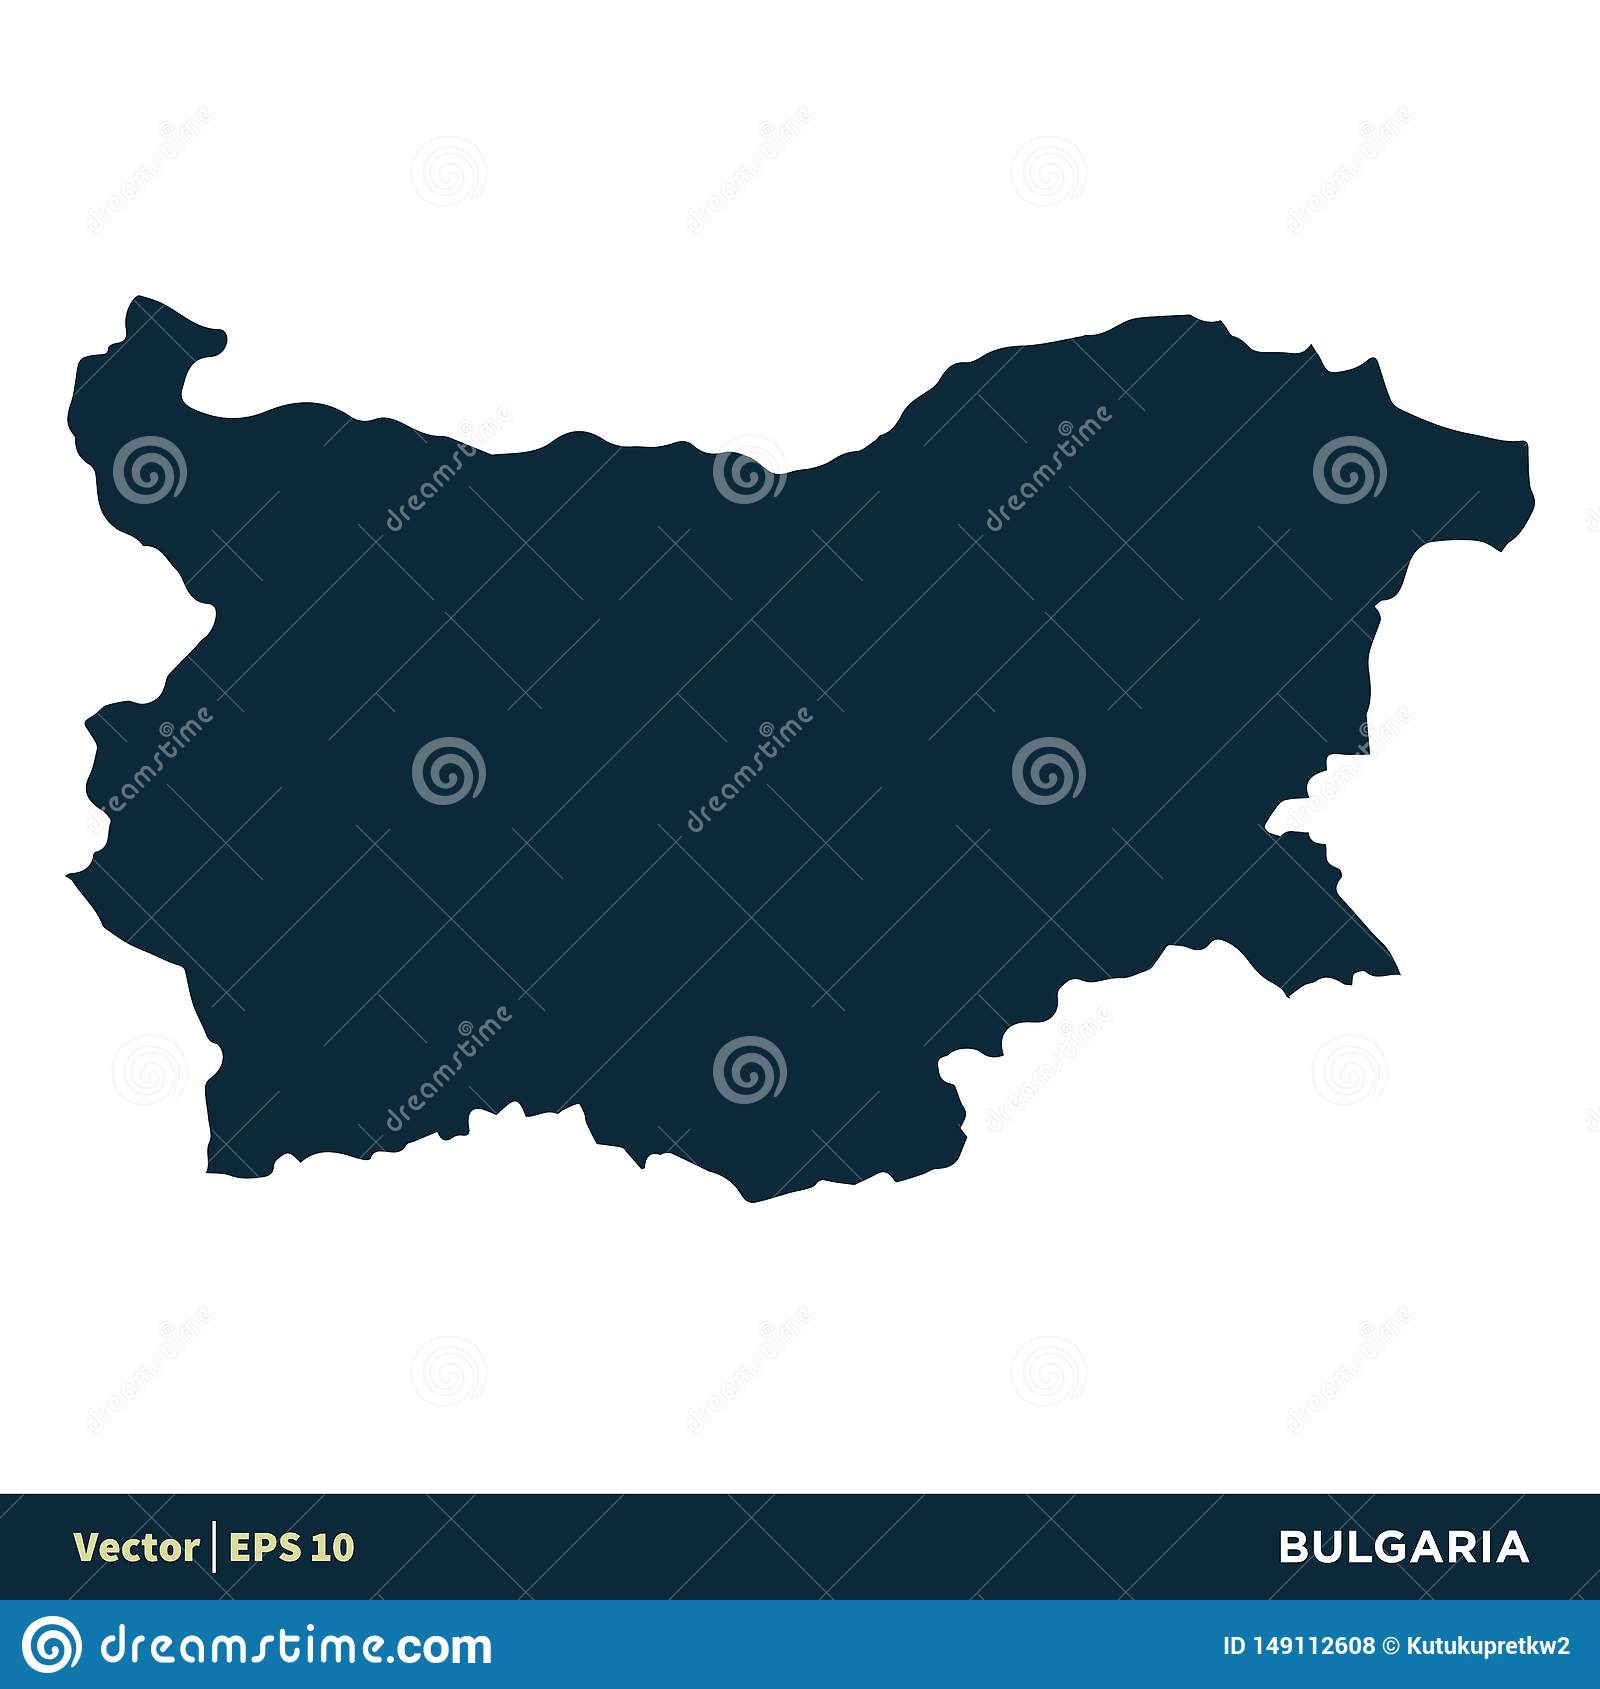 Picture of: Bulgaria Country Map Europe Countries Map Vector Icon Template Illustration Design Template Ilustracion Del Vector Ilustracion De Design Illustration 149112608